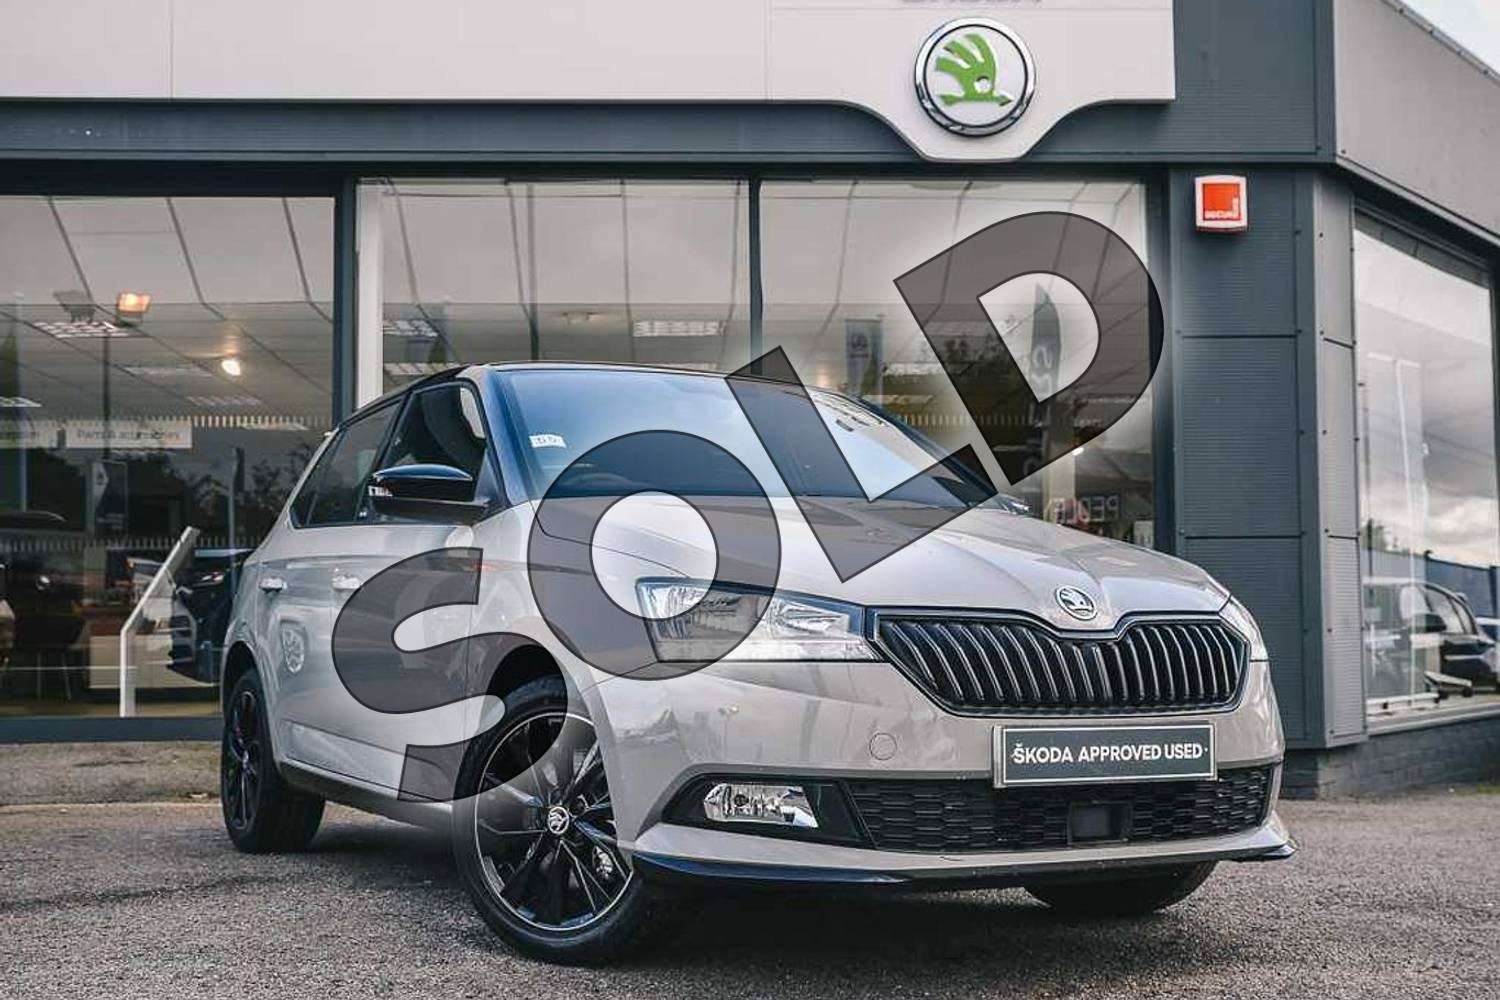 2019 Skoda Fabia Hatchback 1.0 TSI 110 Monte Carlo 5dr DSG in Meteor Grey at Listers ŠKODA Coventry